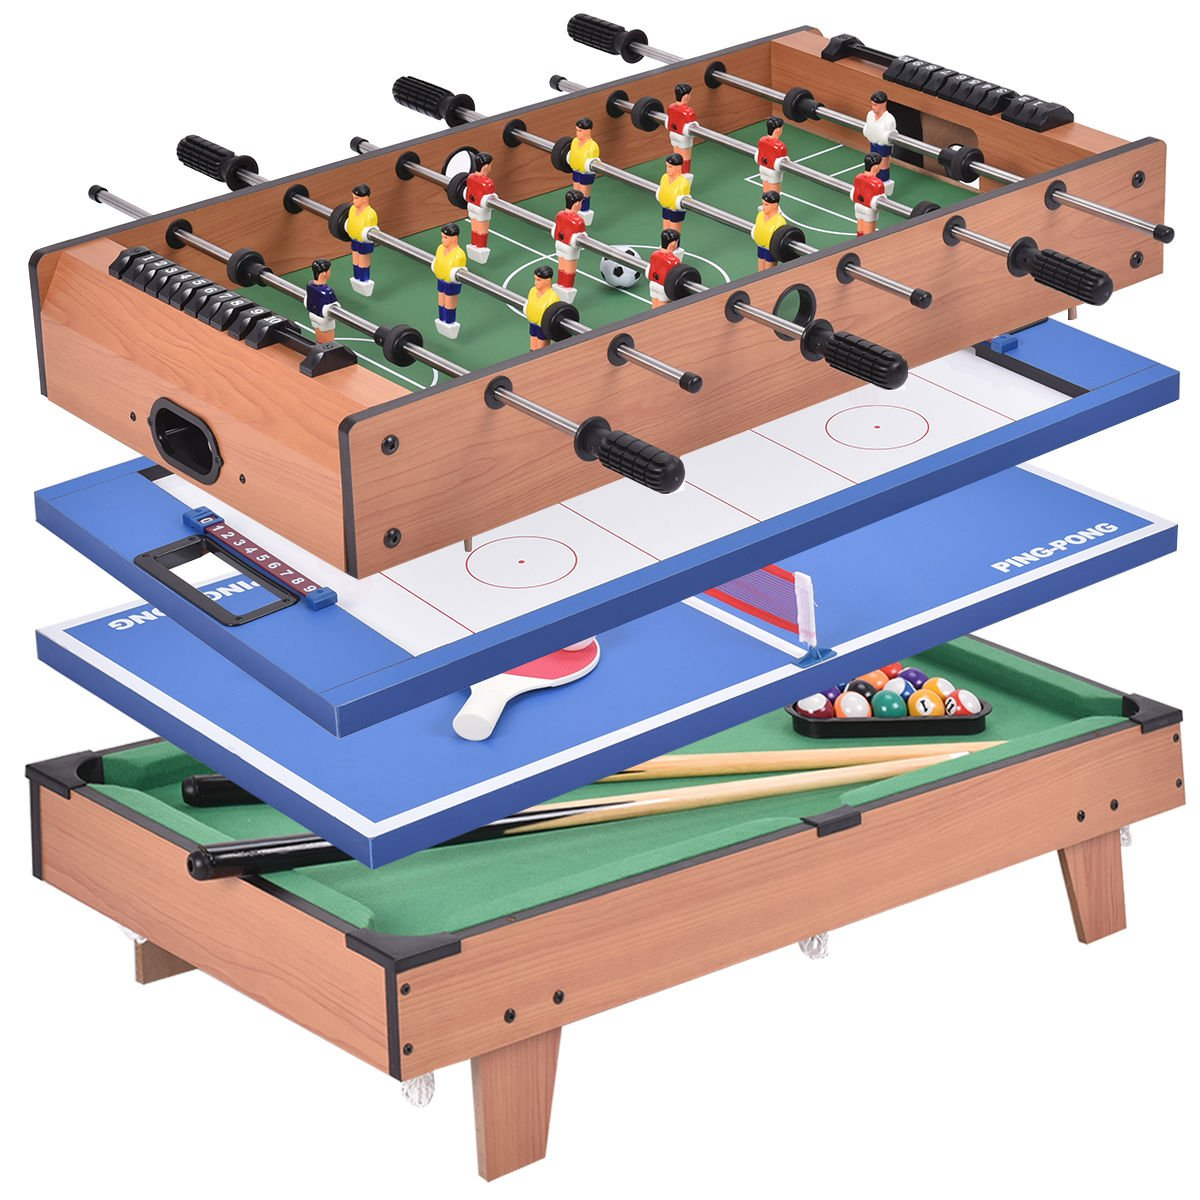 Giantex Multi Game Table Pool Hockey Foosball Table Tennis Billiard Combination Game Table